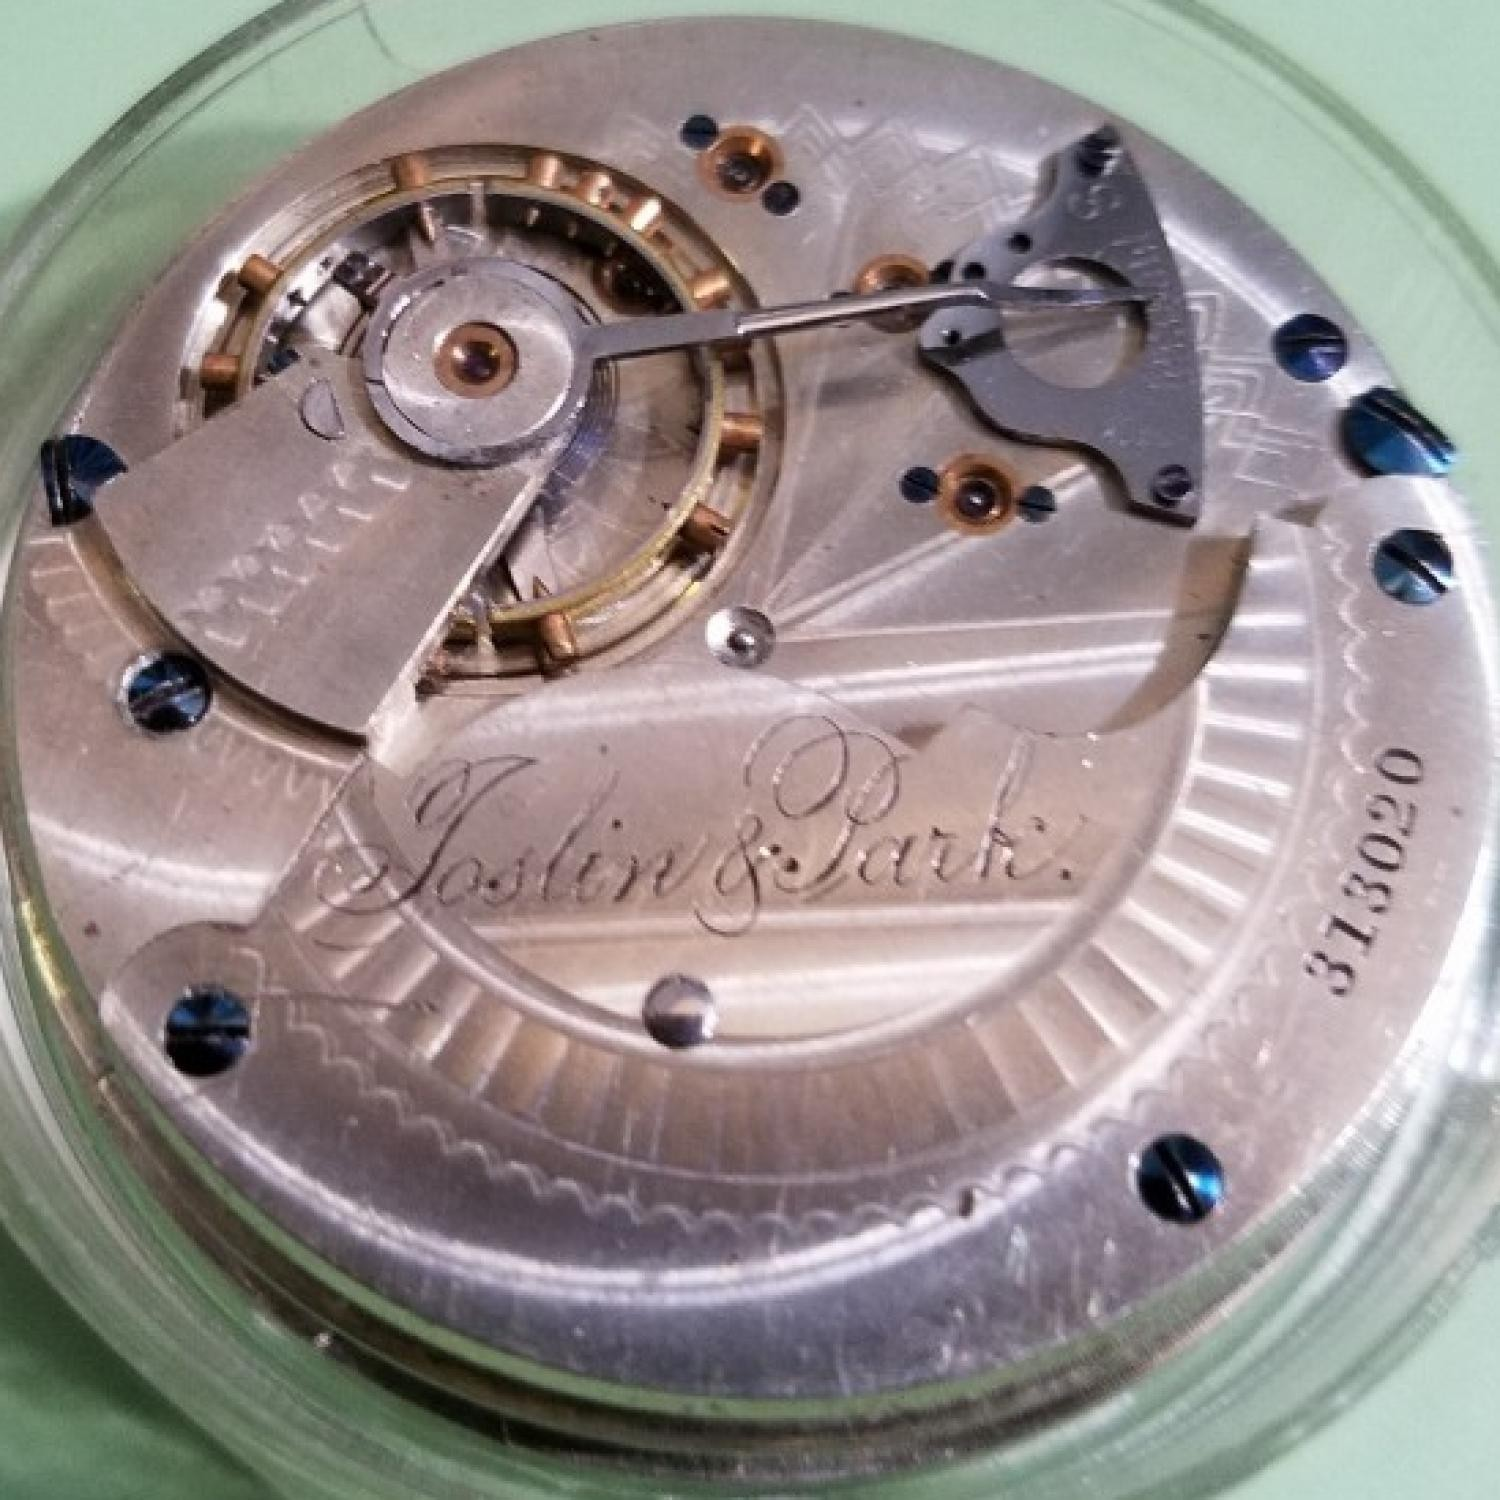 Image of Rockford 83 #313020 Movement